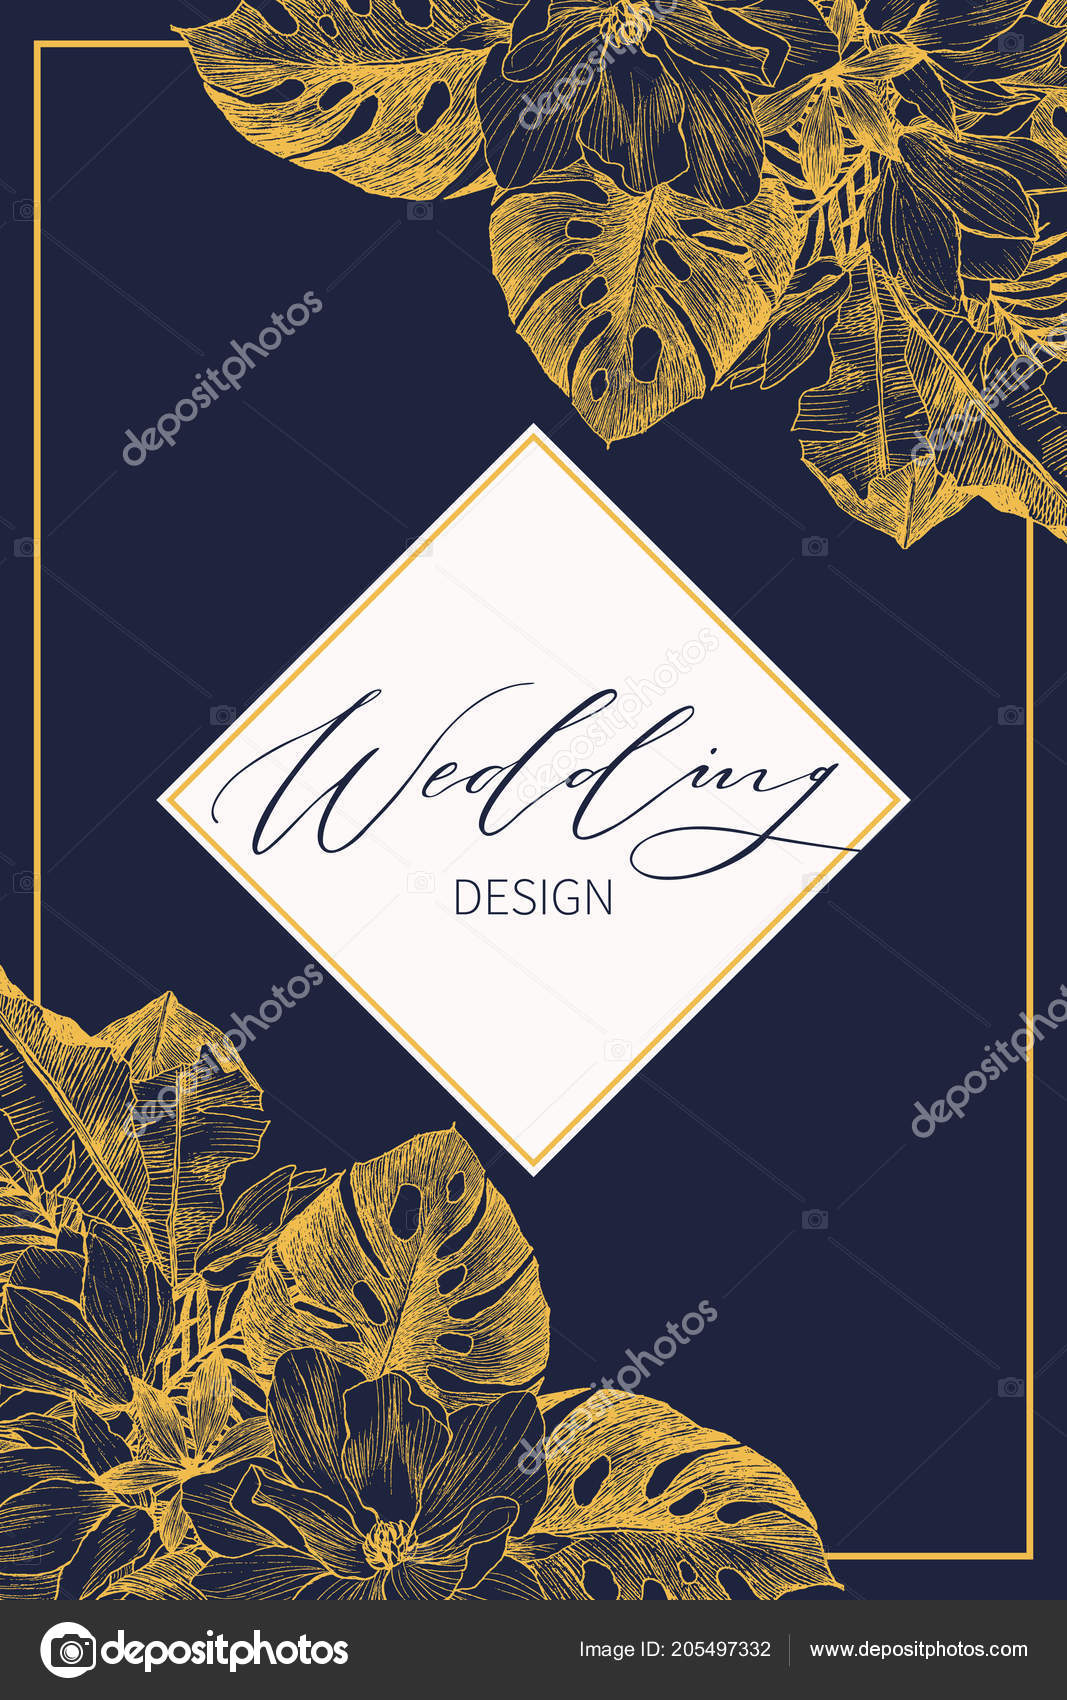 Botanical Wedding Invitation Card Template Design Gold Palm And